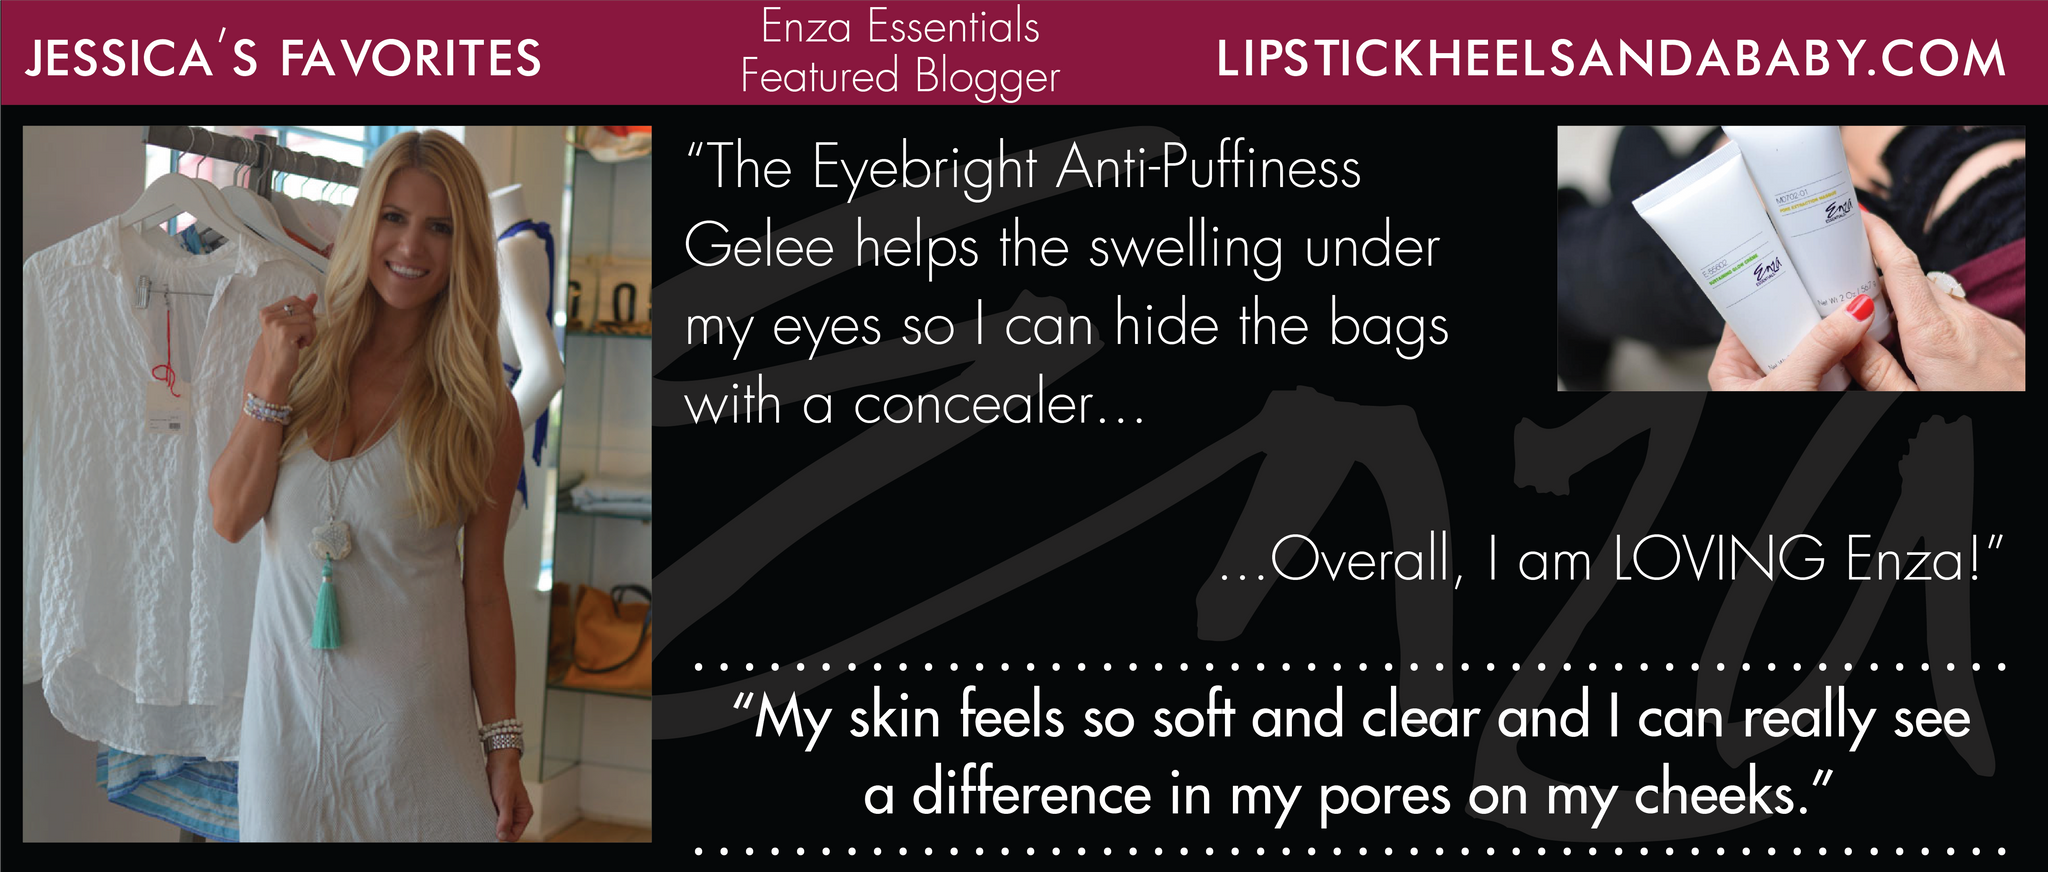 Lipstick Heels and a Baby Jessica Enza Essentials Featured Blogger Review